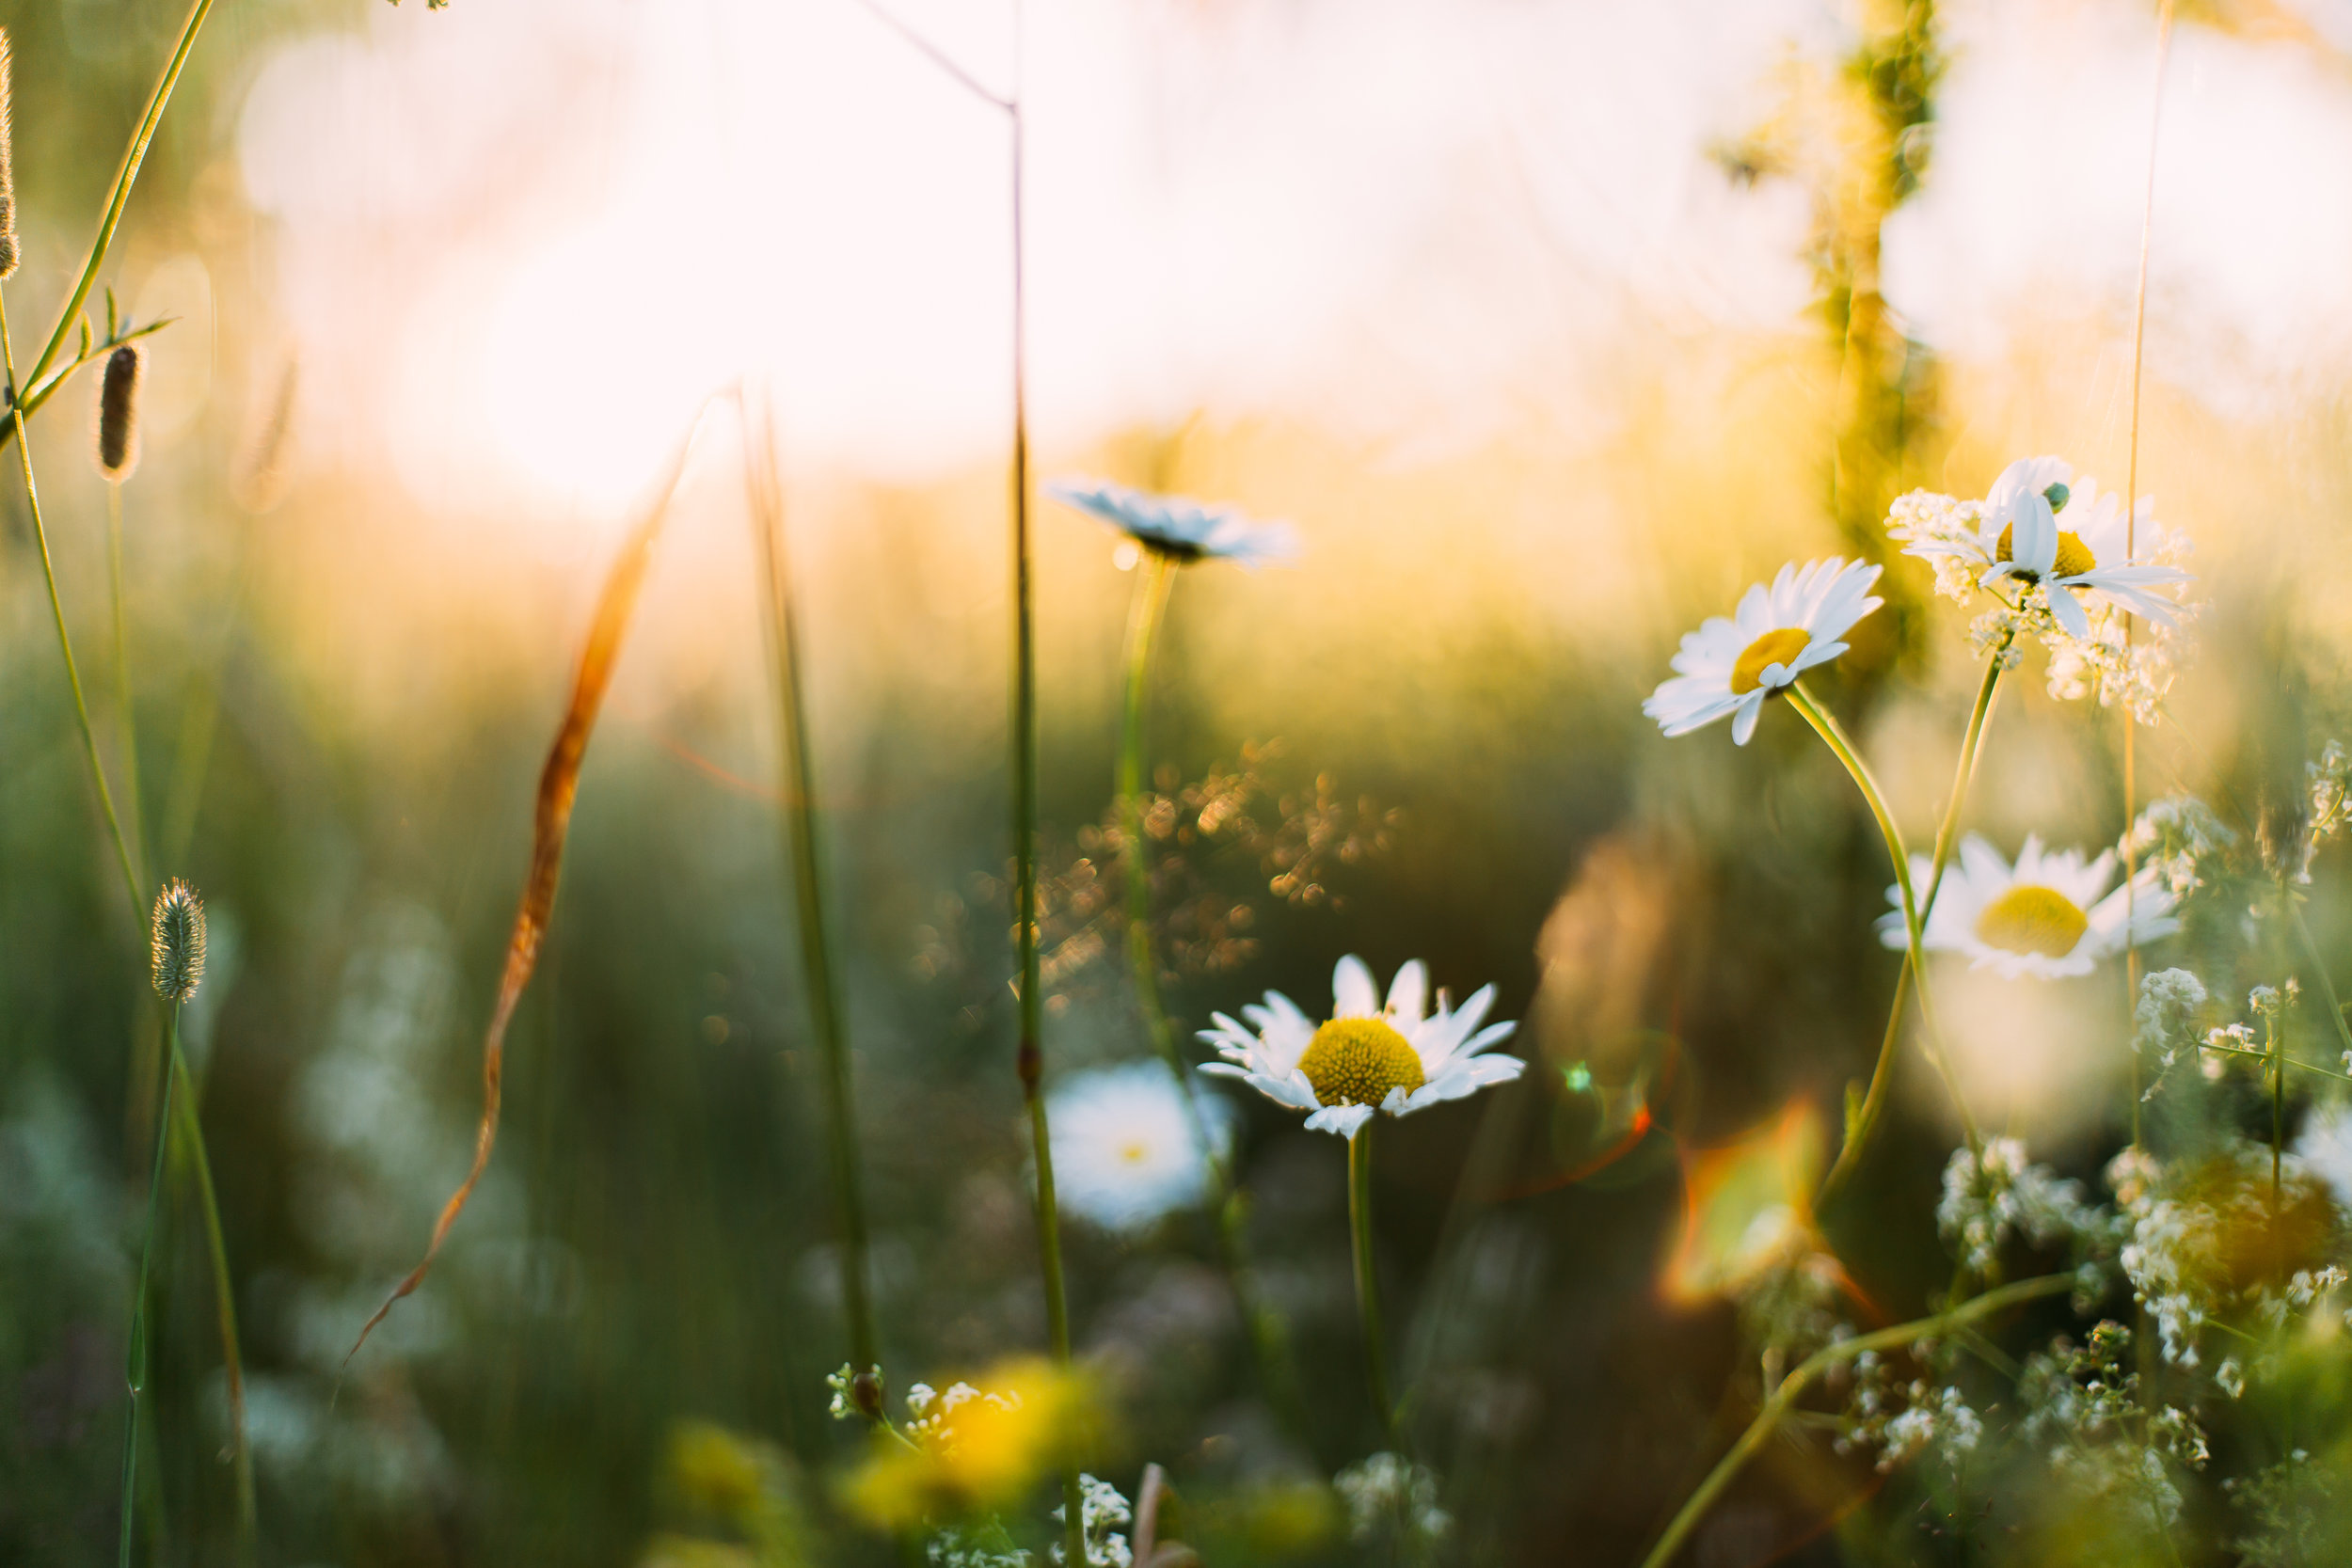 Sunlight on flowers in a field